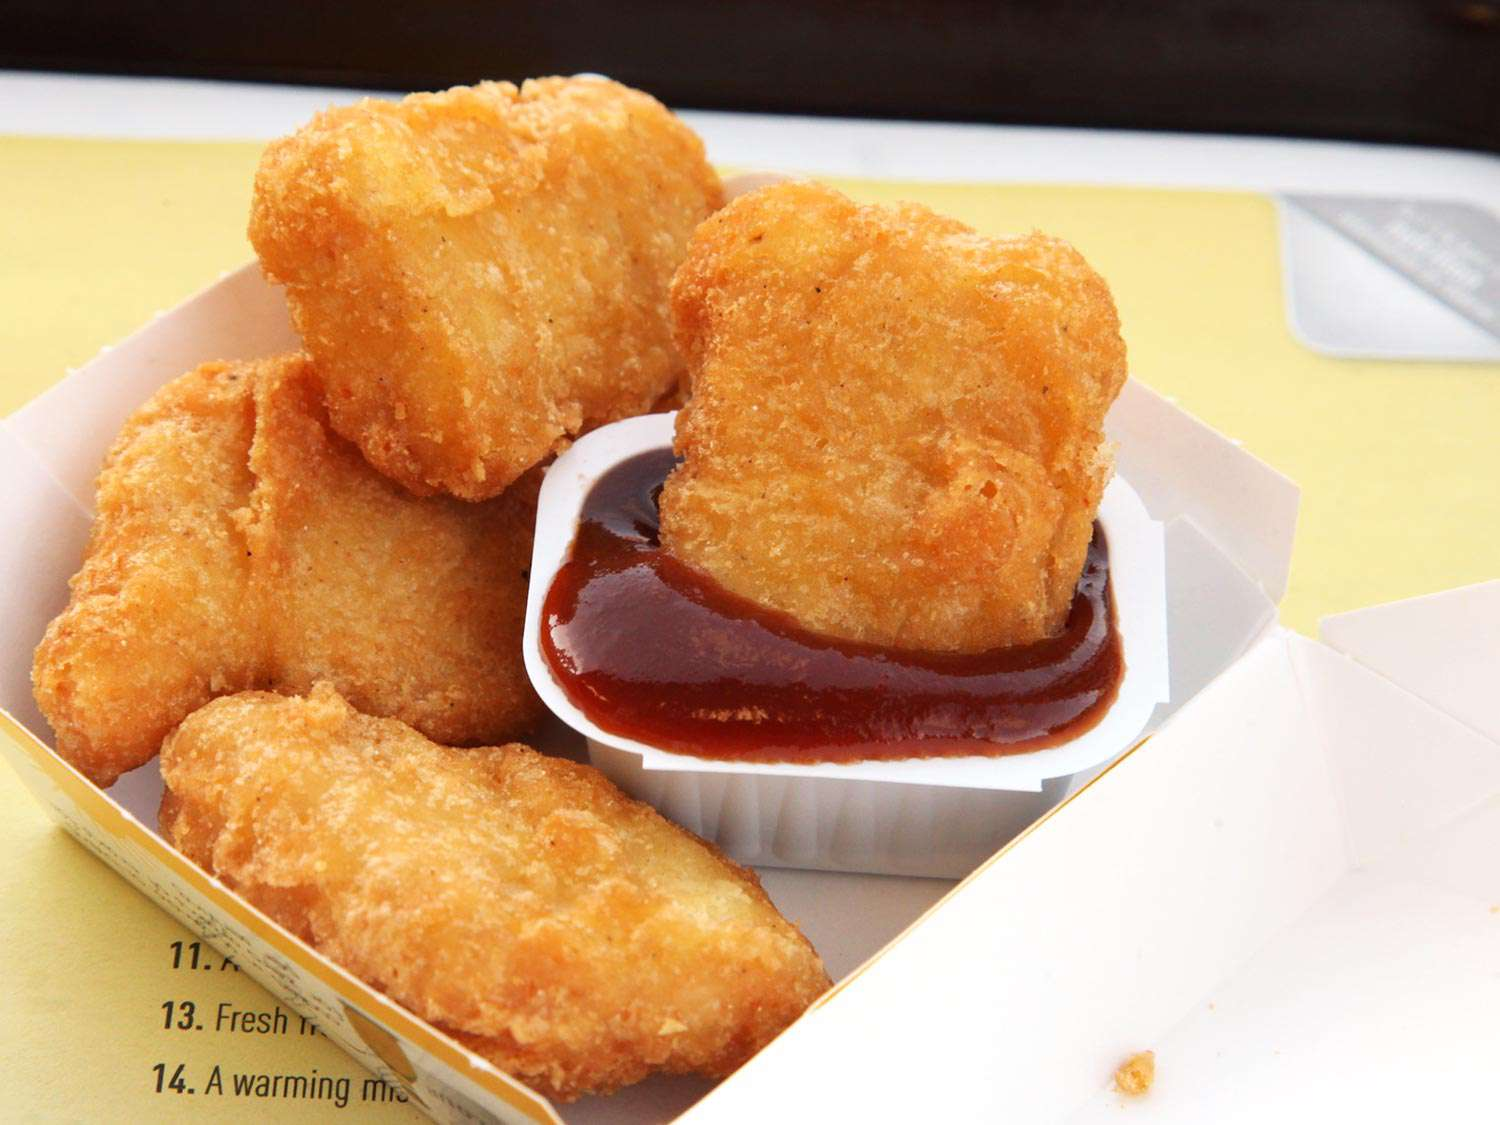 A box of chicken McNuggets from McDonald's with one nugget dipped in a container of sauce